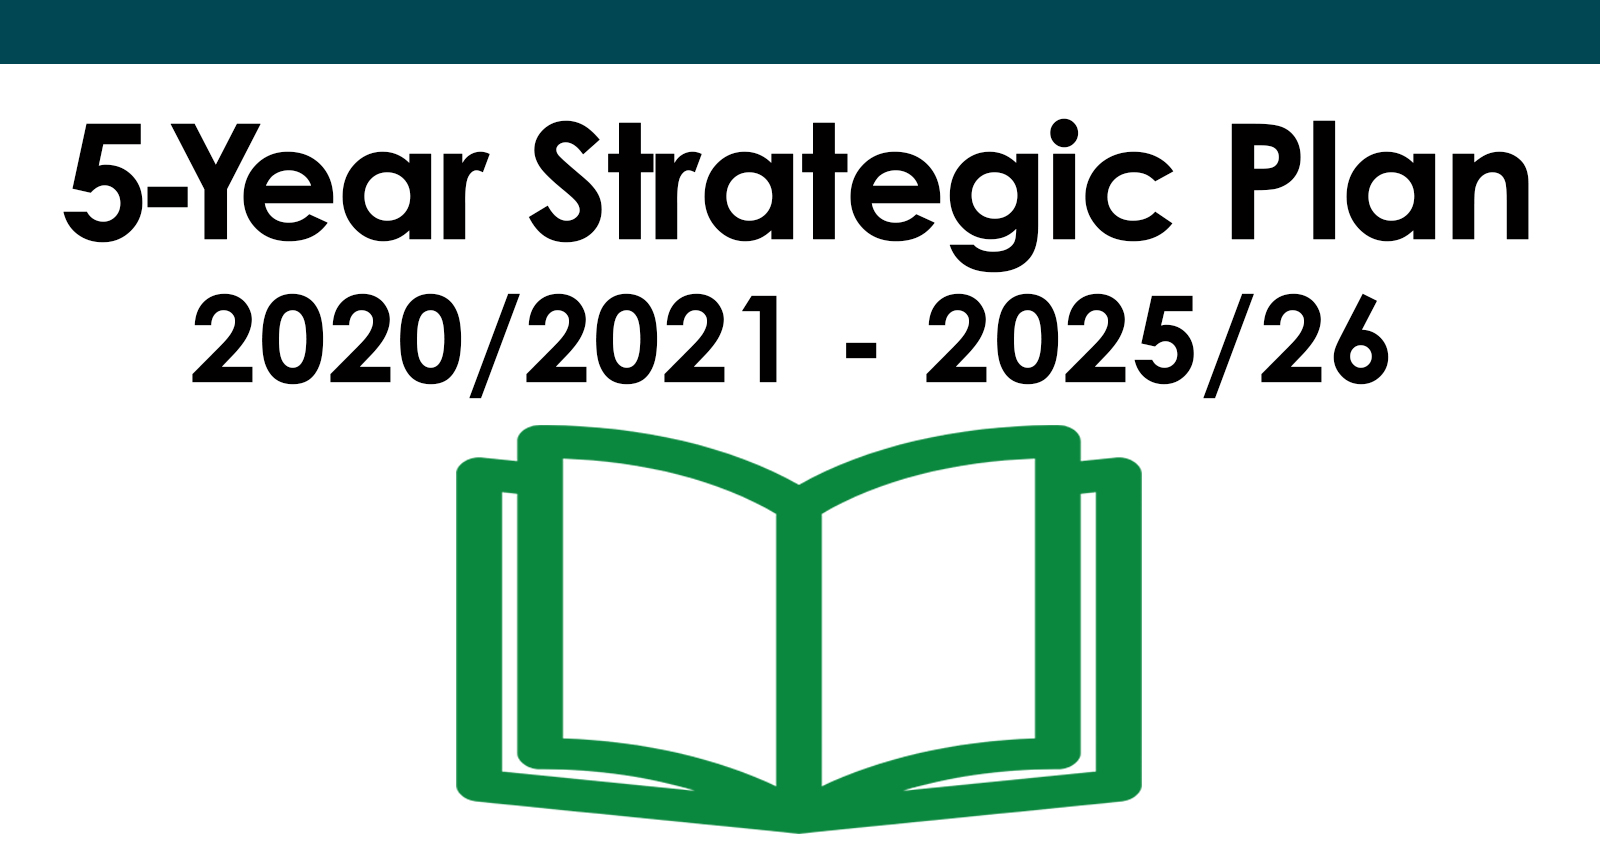 5 Year Strategic Plan